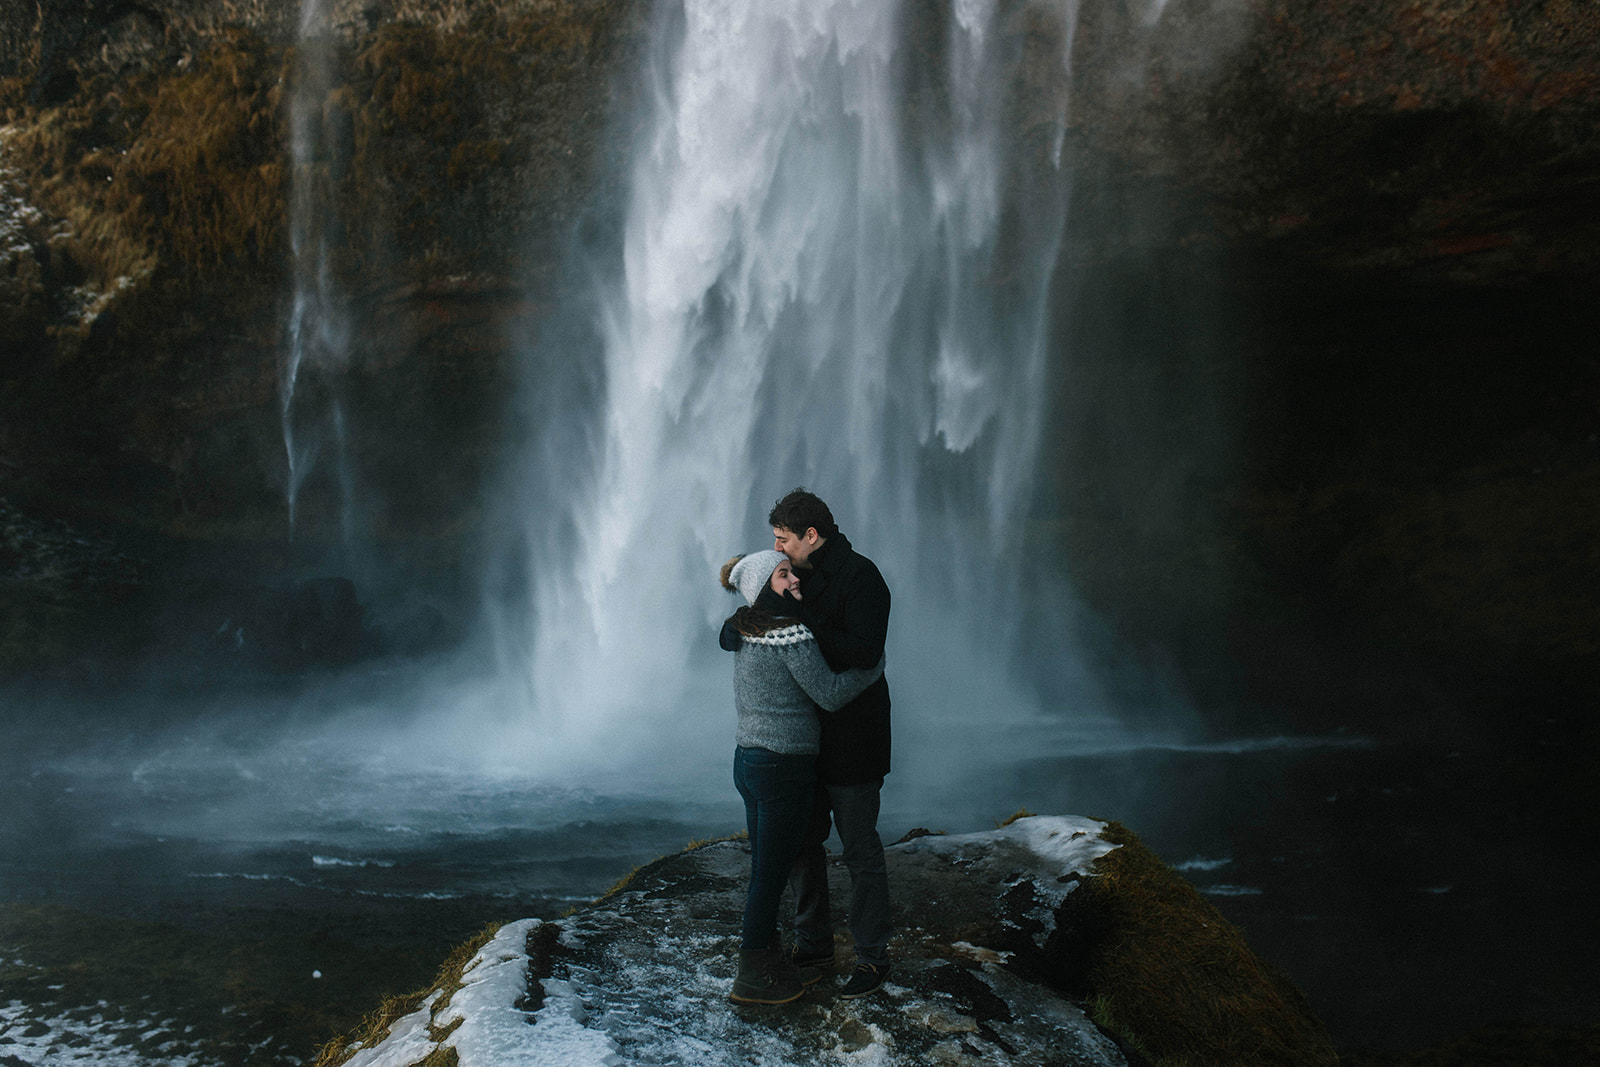 Iceland-engagement-photoshoot-47-1 Kaitlin and Mike // Iceland engagement photography